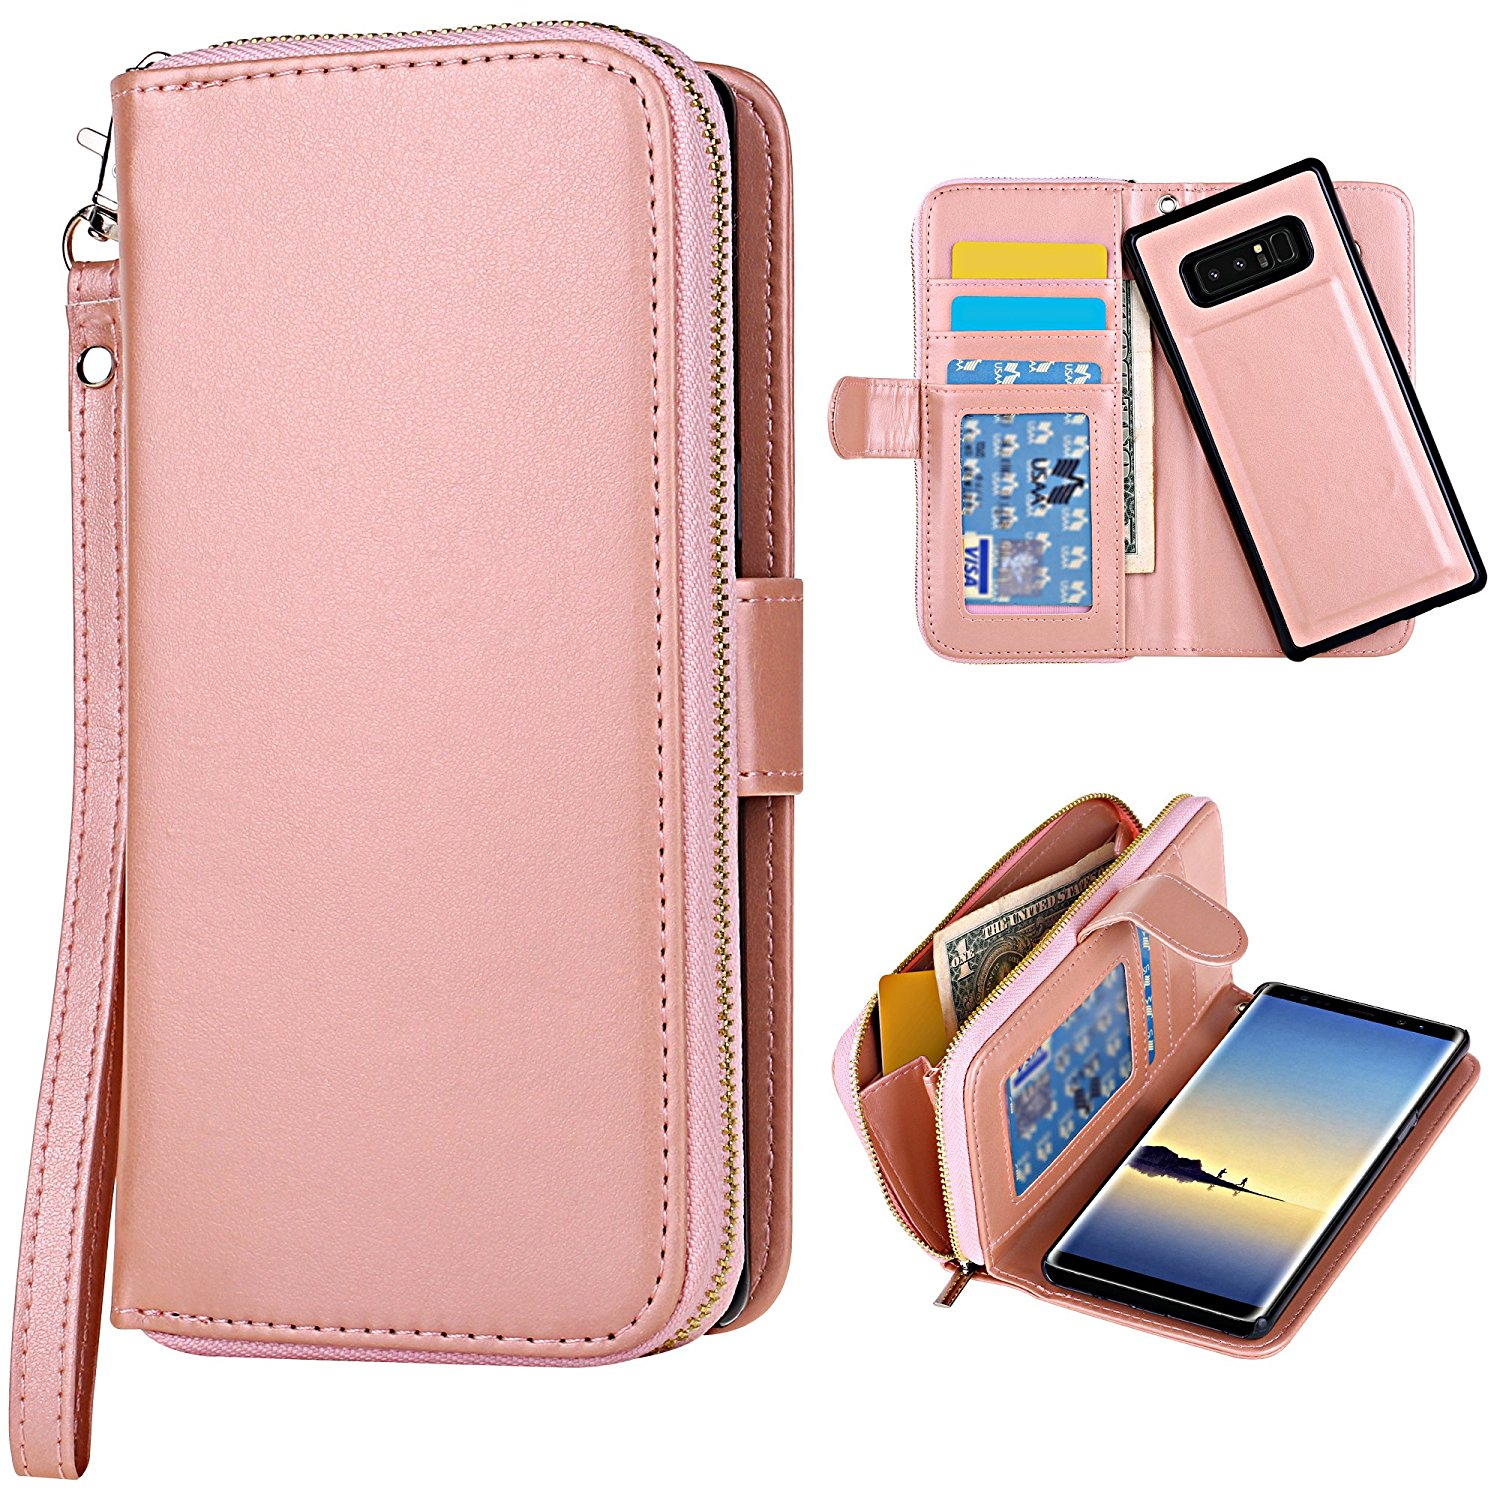 Galaxy Note 8 Case [Cards Slot Pocket], ELV Samsung Galaxy Note 8 Flip Case [PU Leather] Folio Wallet Purse Protective Magnetic-Closer Case Cover for Samsung Galaxy Note 8 [ROSE GOLD]